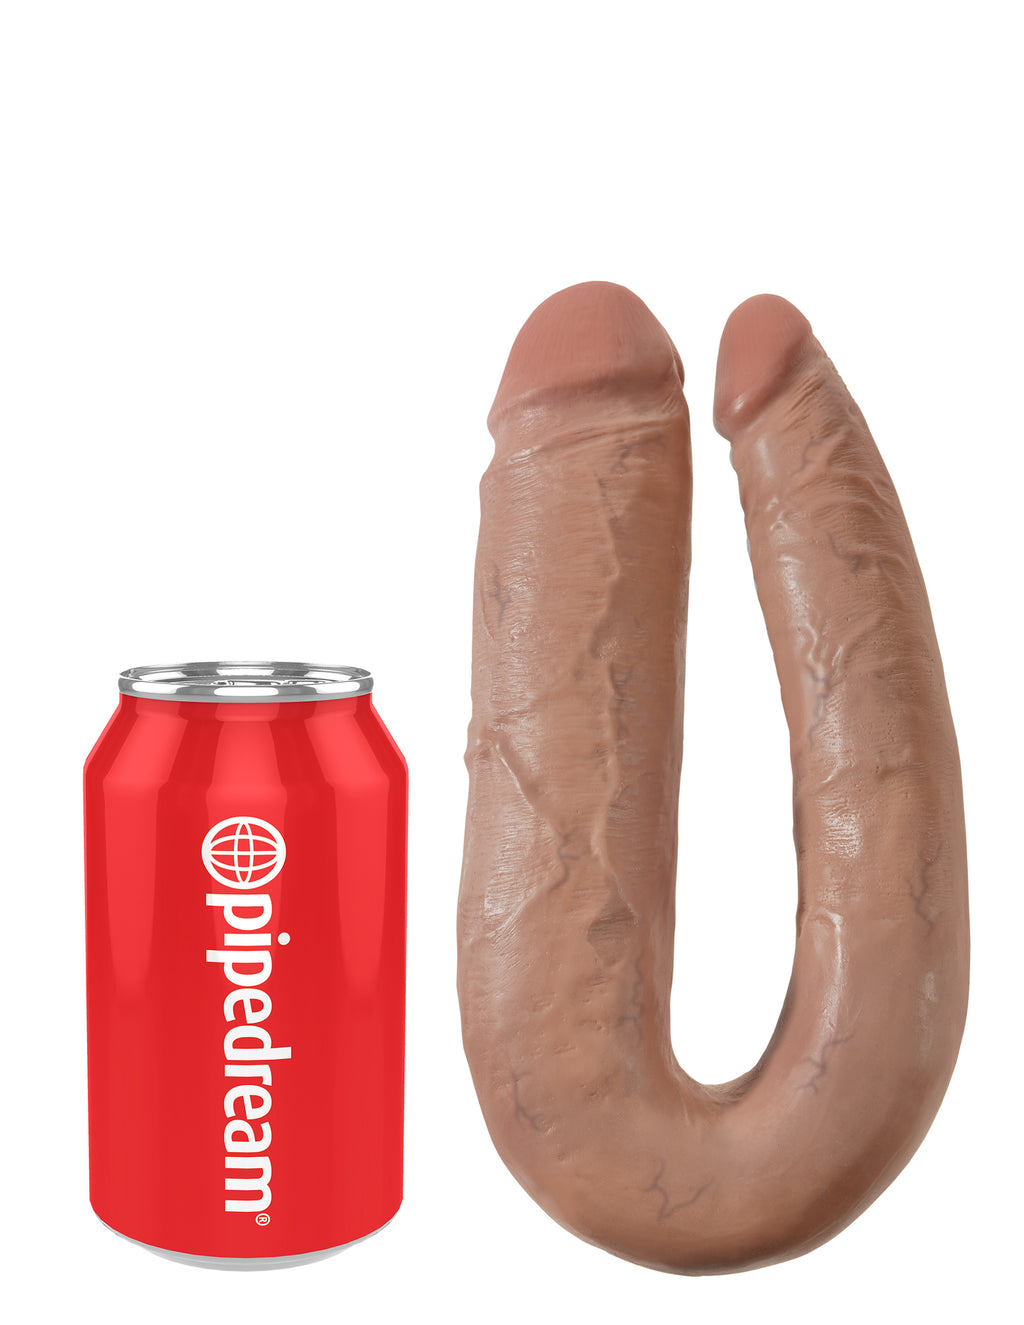 King Cock U-Shaped Large Double Trouble Tan | Dildos, Vibrator, Realistic Dildos, Sex Toys For Women, Sex Toys, Adult Toys | My Sex Shop